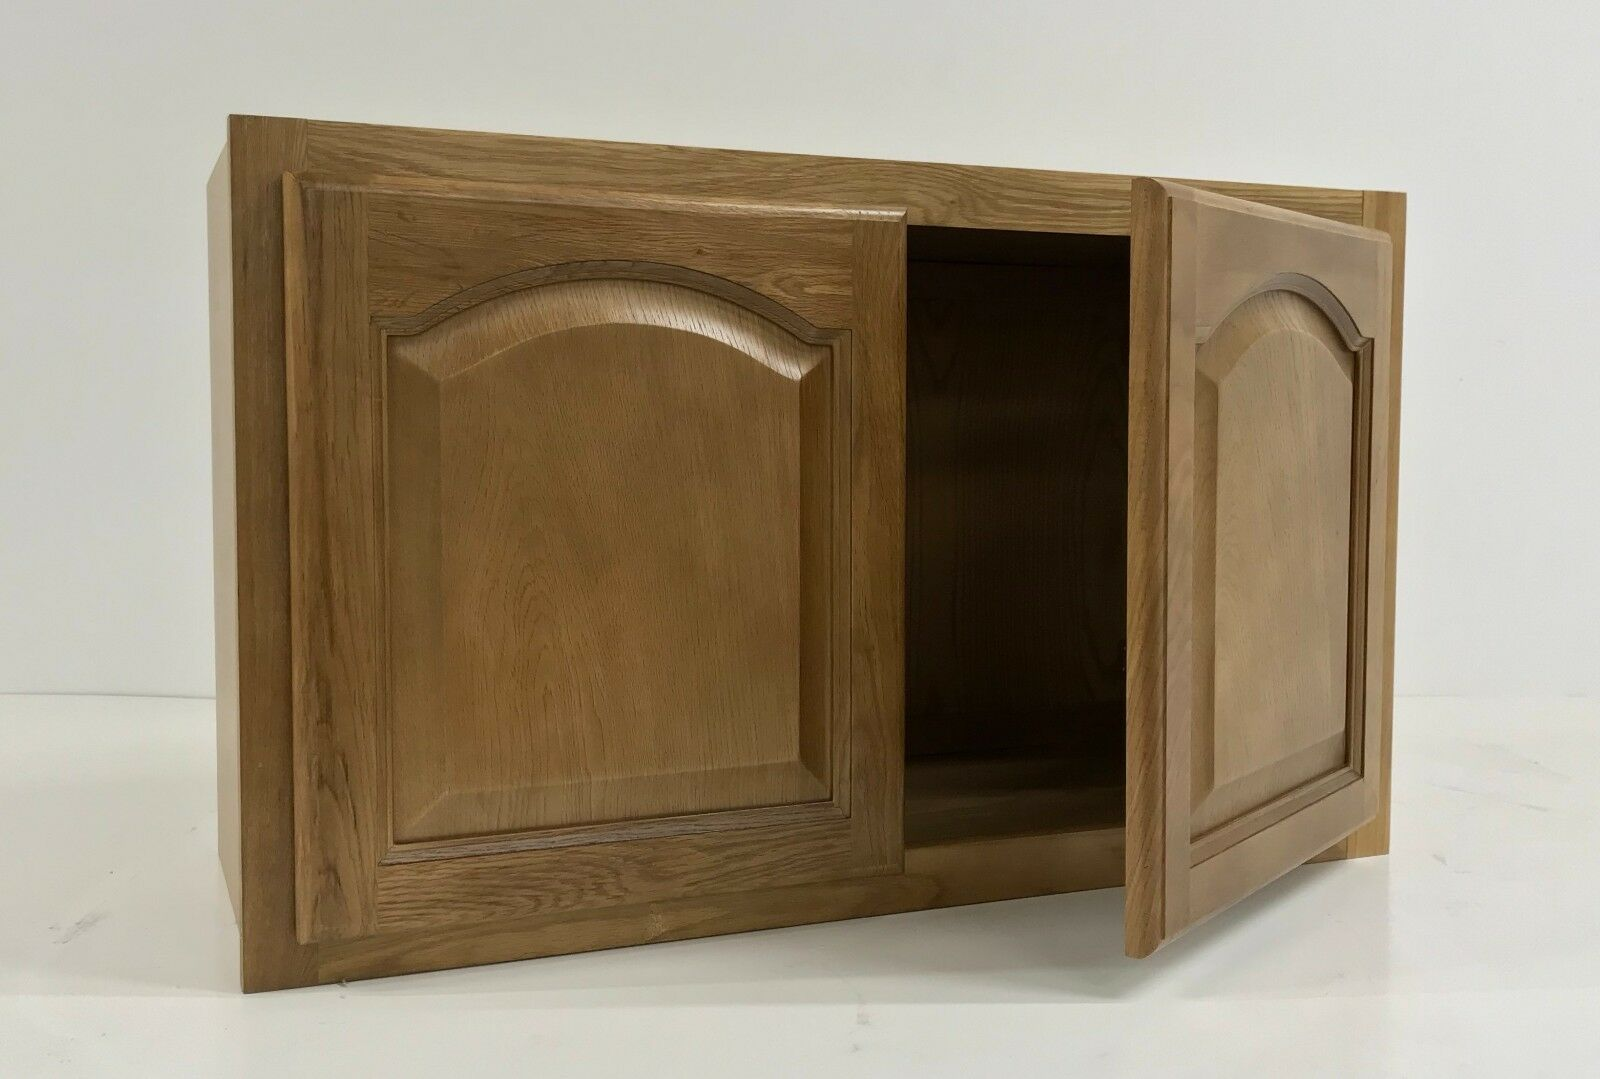 All Wood RTA Country Oak Wall Cabinet